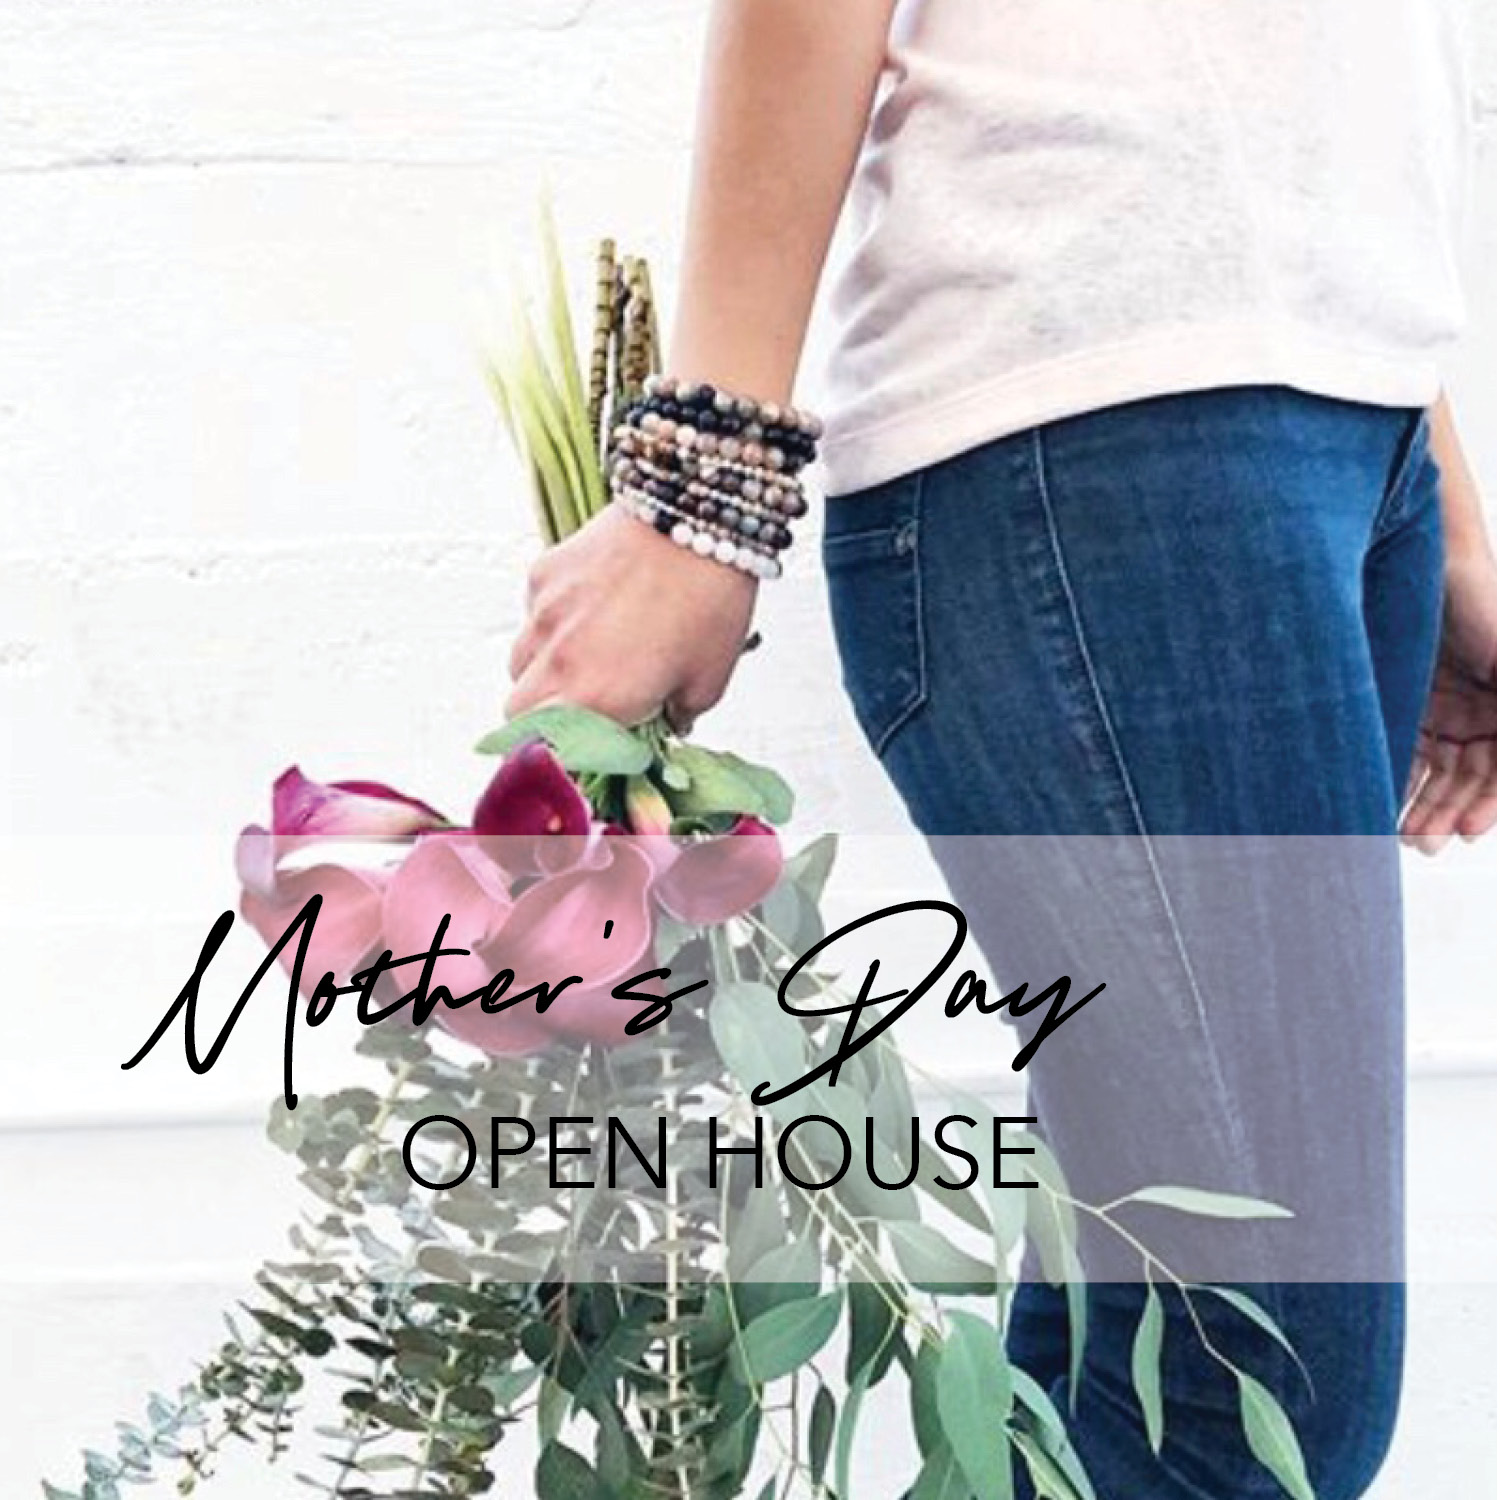 Save the date - Join us this Thursday as we open our studio doors to the public for a special Mother's Day Open House!WHEN? Thursday, May 9th, 10AM-7PMWHERE? BT Studio: 229 E Fairmount Ave, Whitefish BayWHAT? Chance to shop those last minute gifts for that special mom (or yourself)